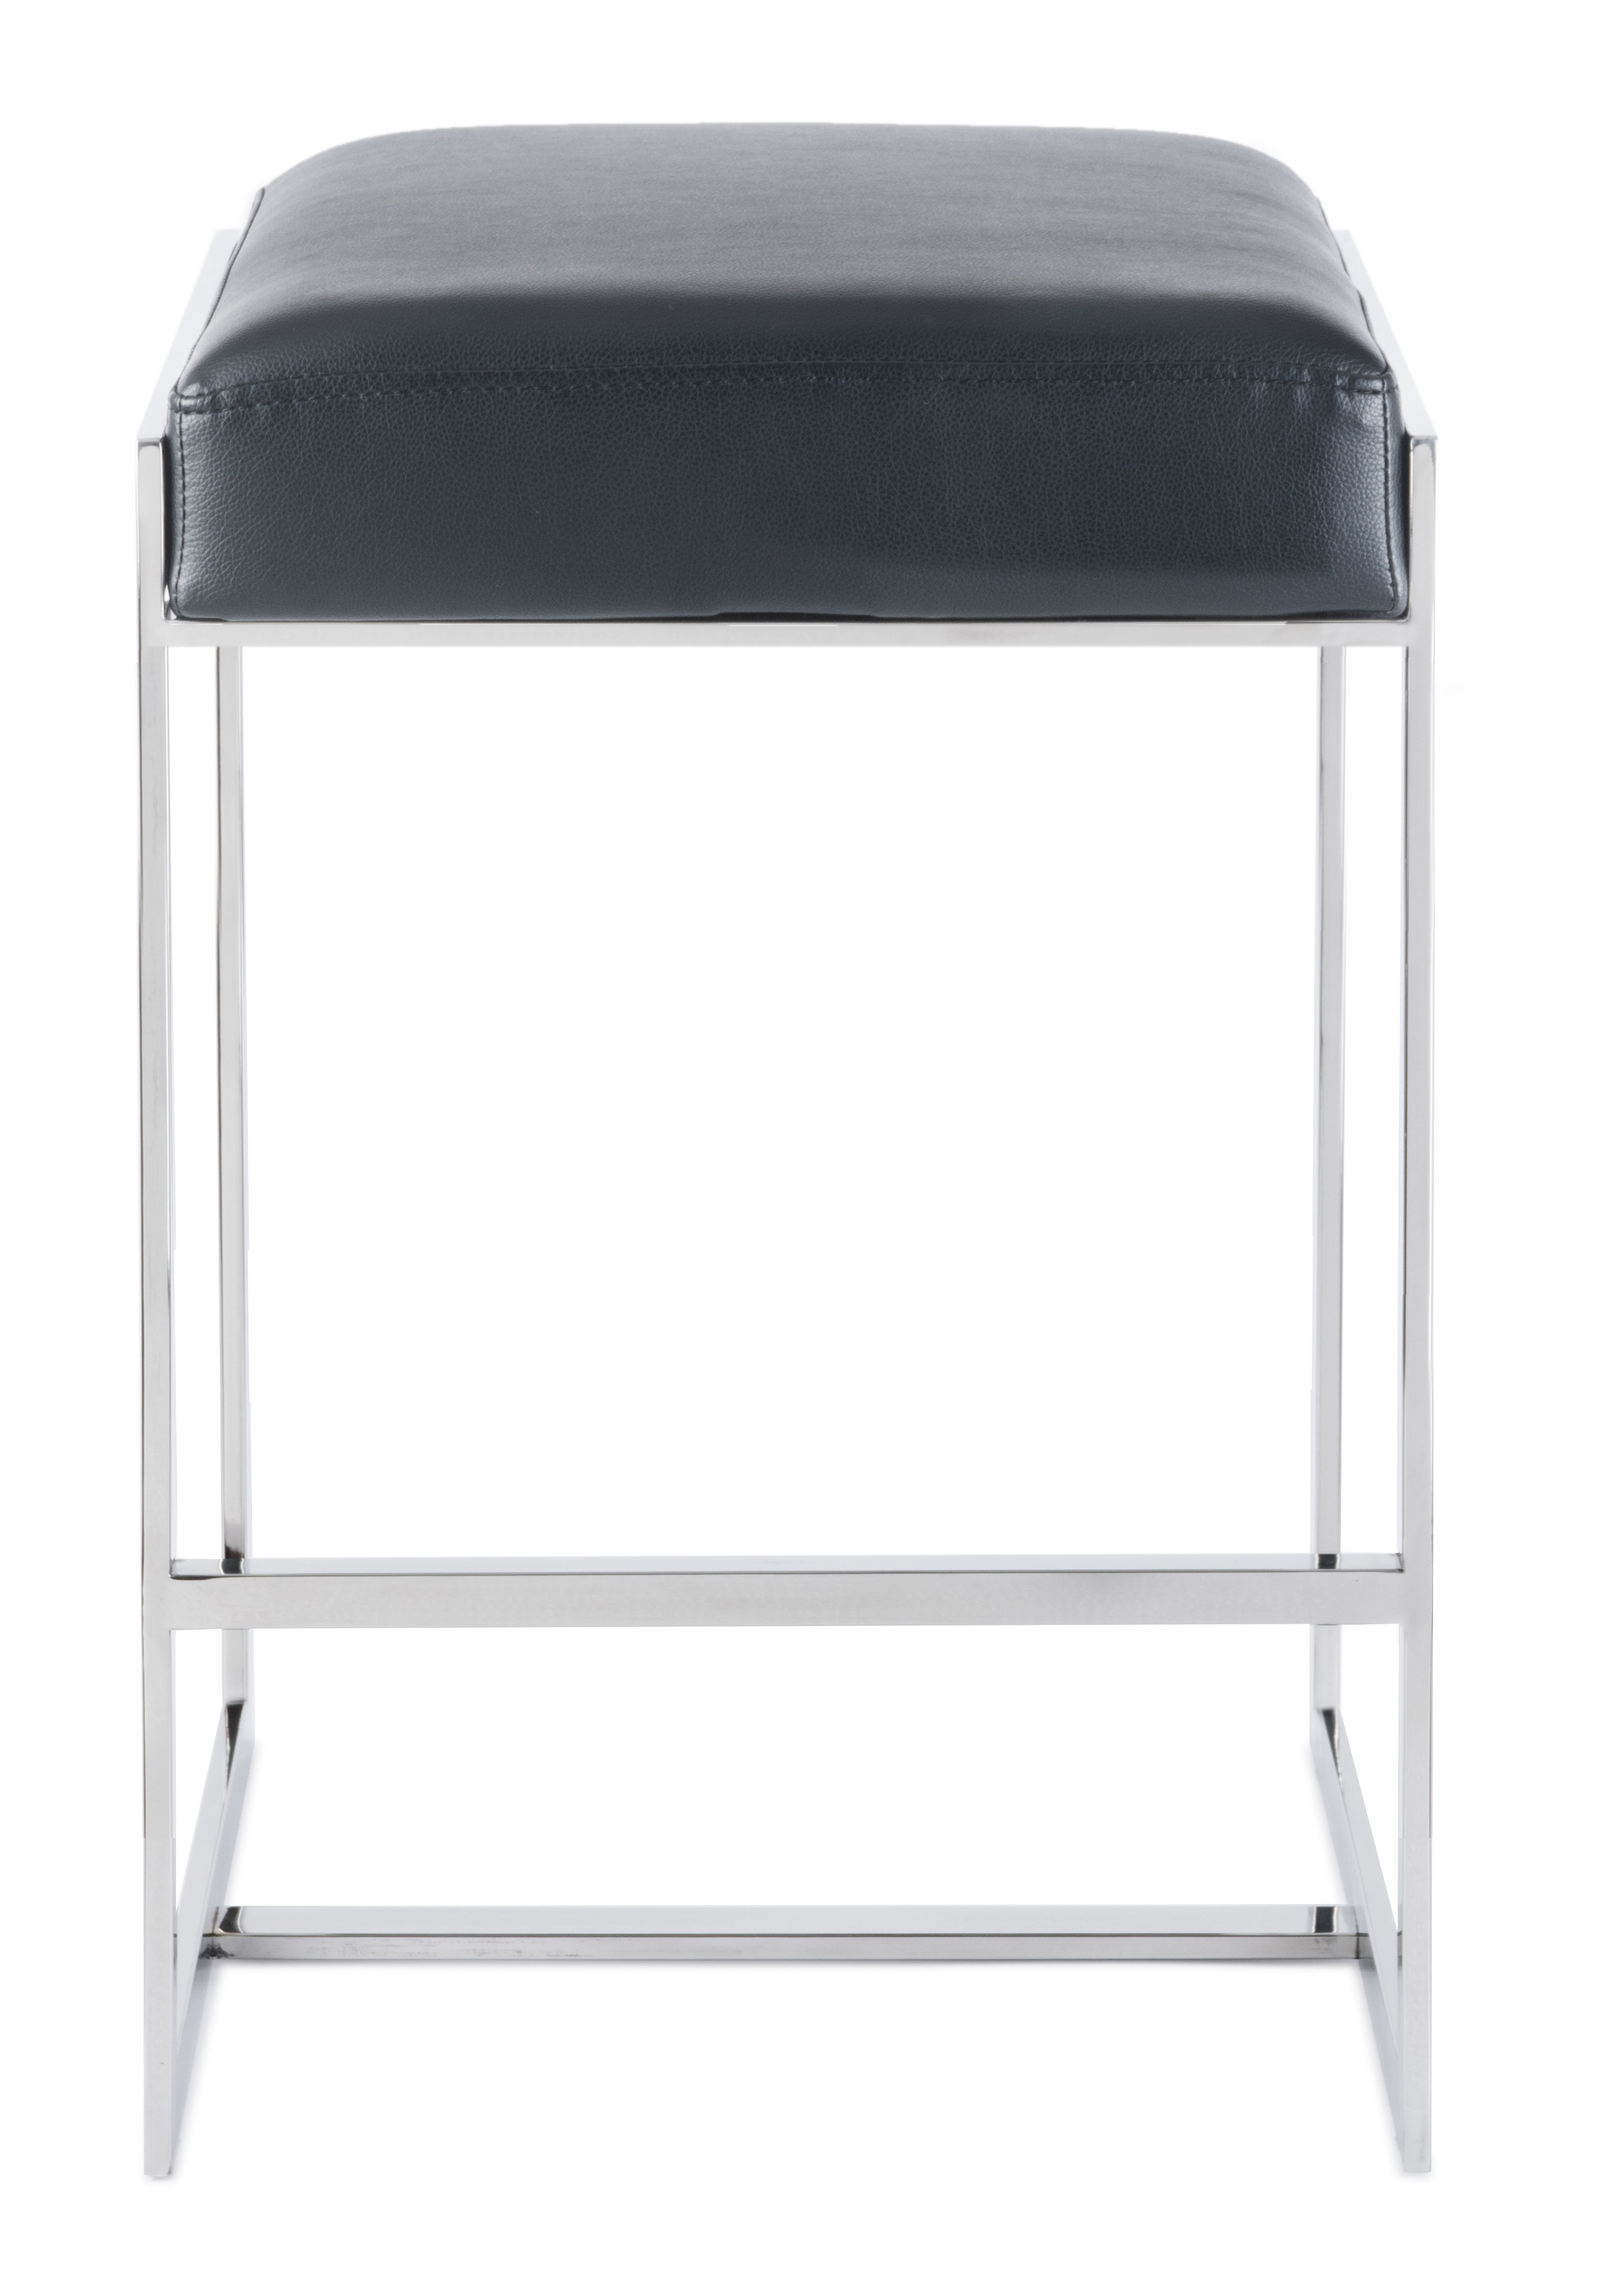 palmer-counter-stool-black-with-polished-stainless.jpg